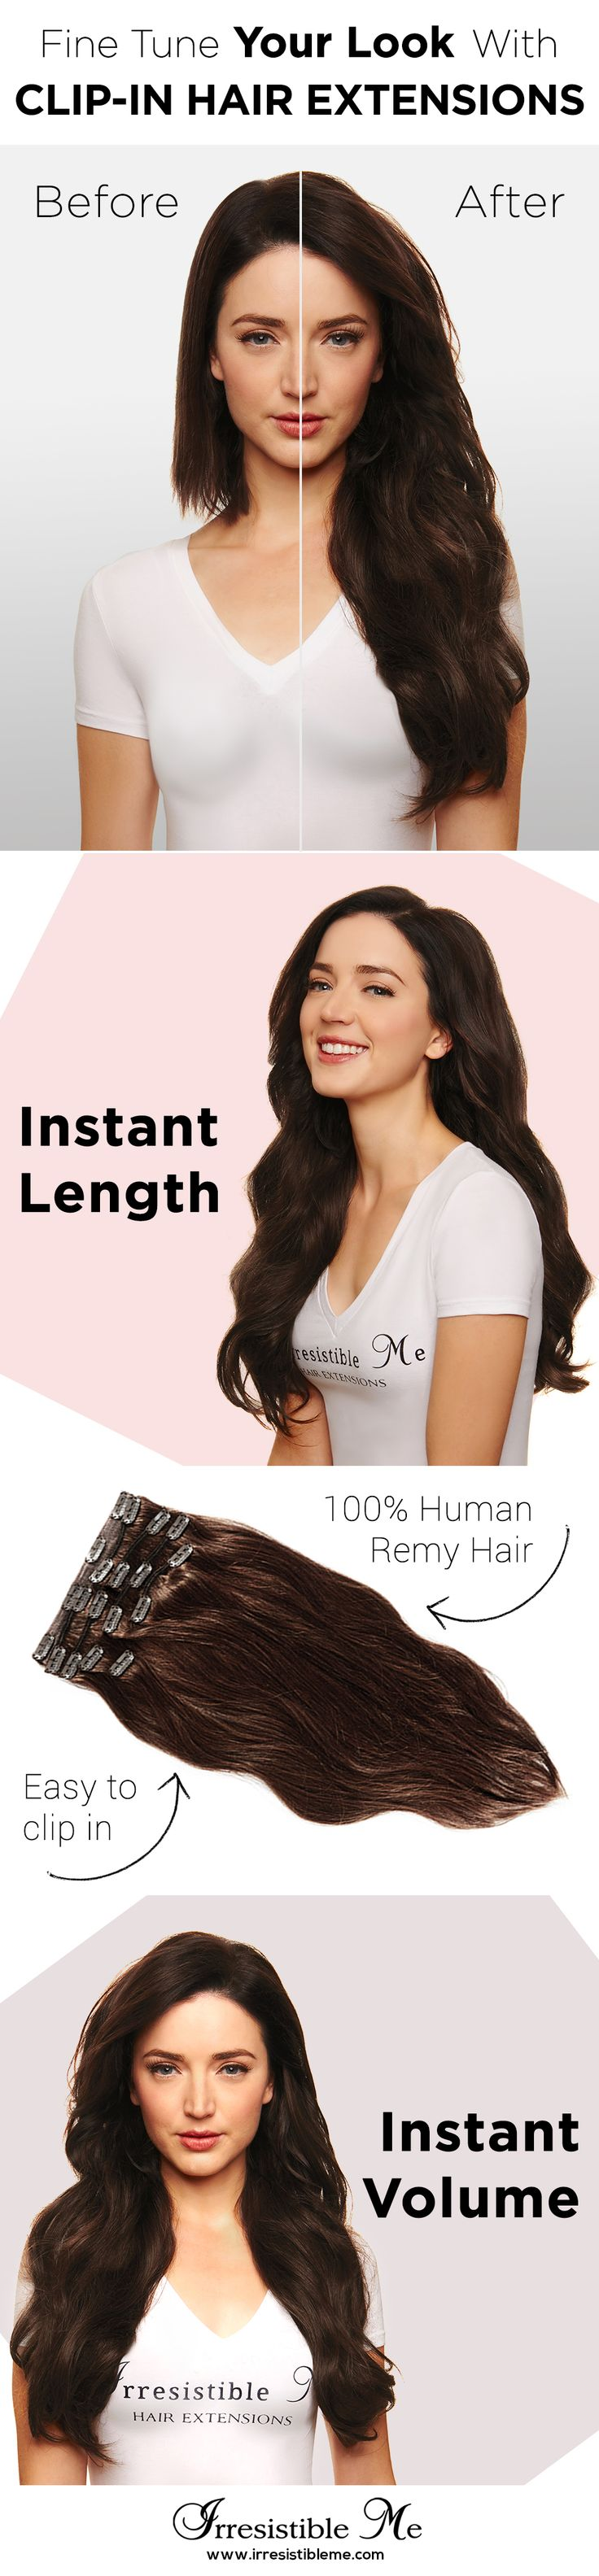 Add length and volume in just minutes with Irresistible Me 100% human Remy clip-in hair extensions and try any hairstyle you want without any damage to your own hair. They can be dyed, cut and heat styled. You can choose the color, length and weight. Big Spring Sale on site between March 18 - March 31 2016.